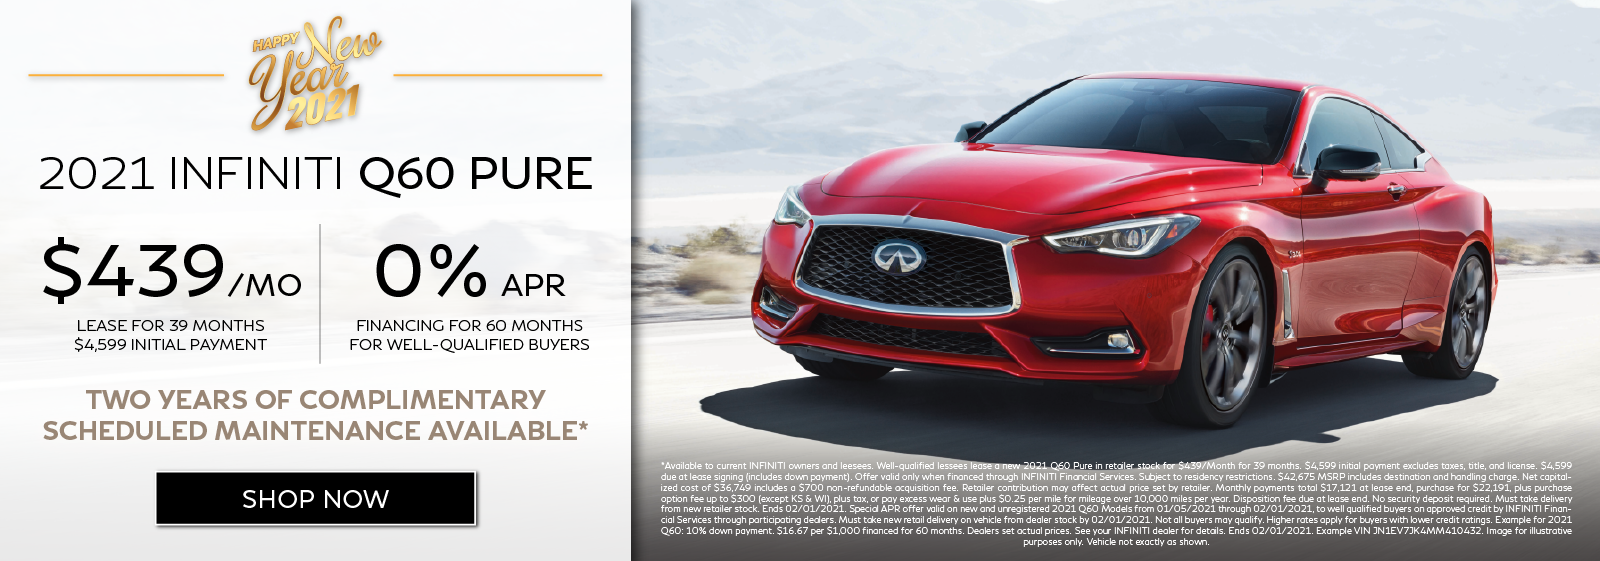 Well-qualified customers can lease a new 2021 Q60 PURE for $439 per month for 39 months OR get 0% APR financing for 60 months plus get two years of complimentary scheduled maintenance.* Click to shop now.